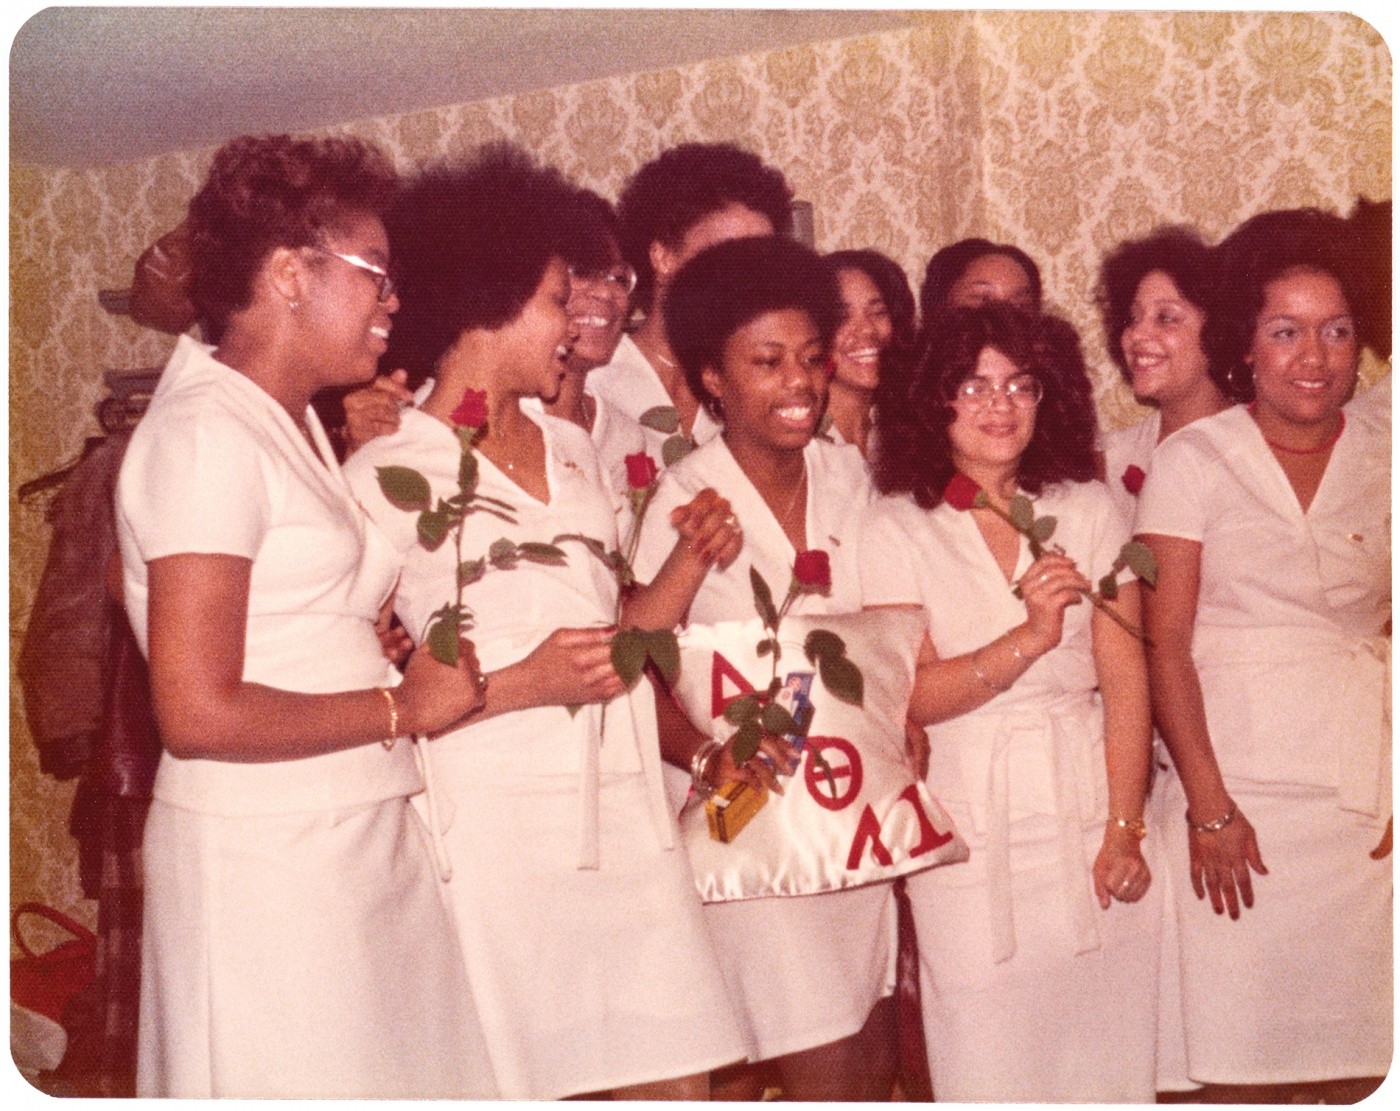 The 1976 Delta induction ceremony